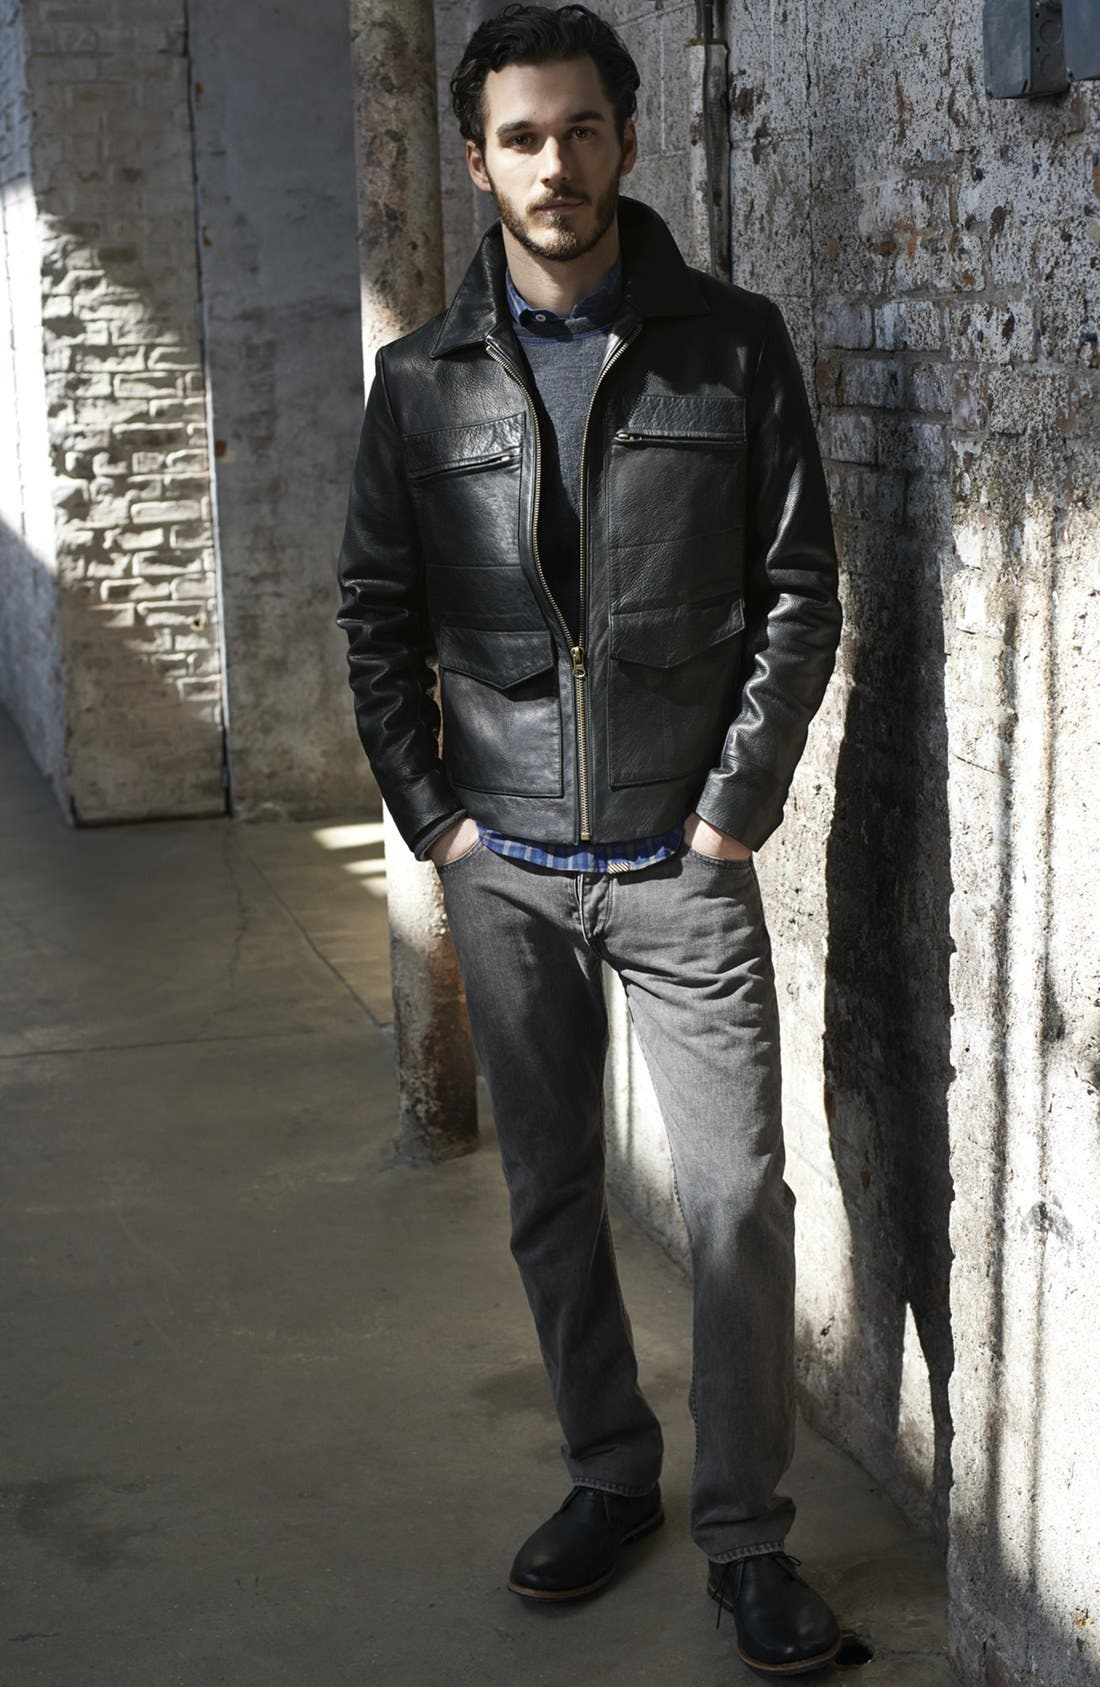 Main Image - Billy Reid Leather Jacket, Sweatshirt & rag & bone Jeans